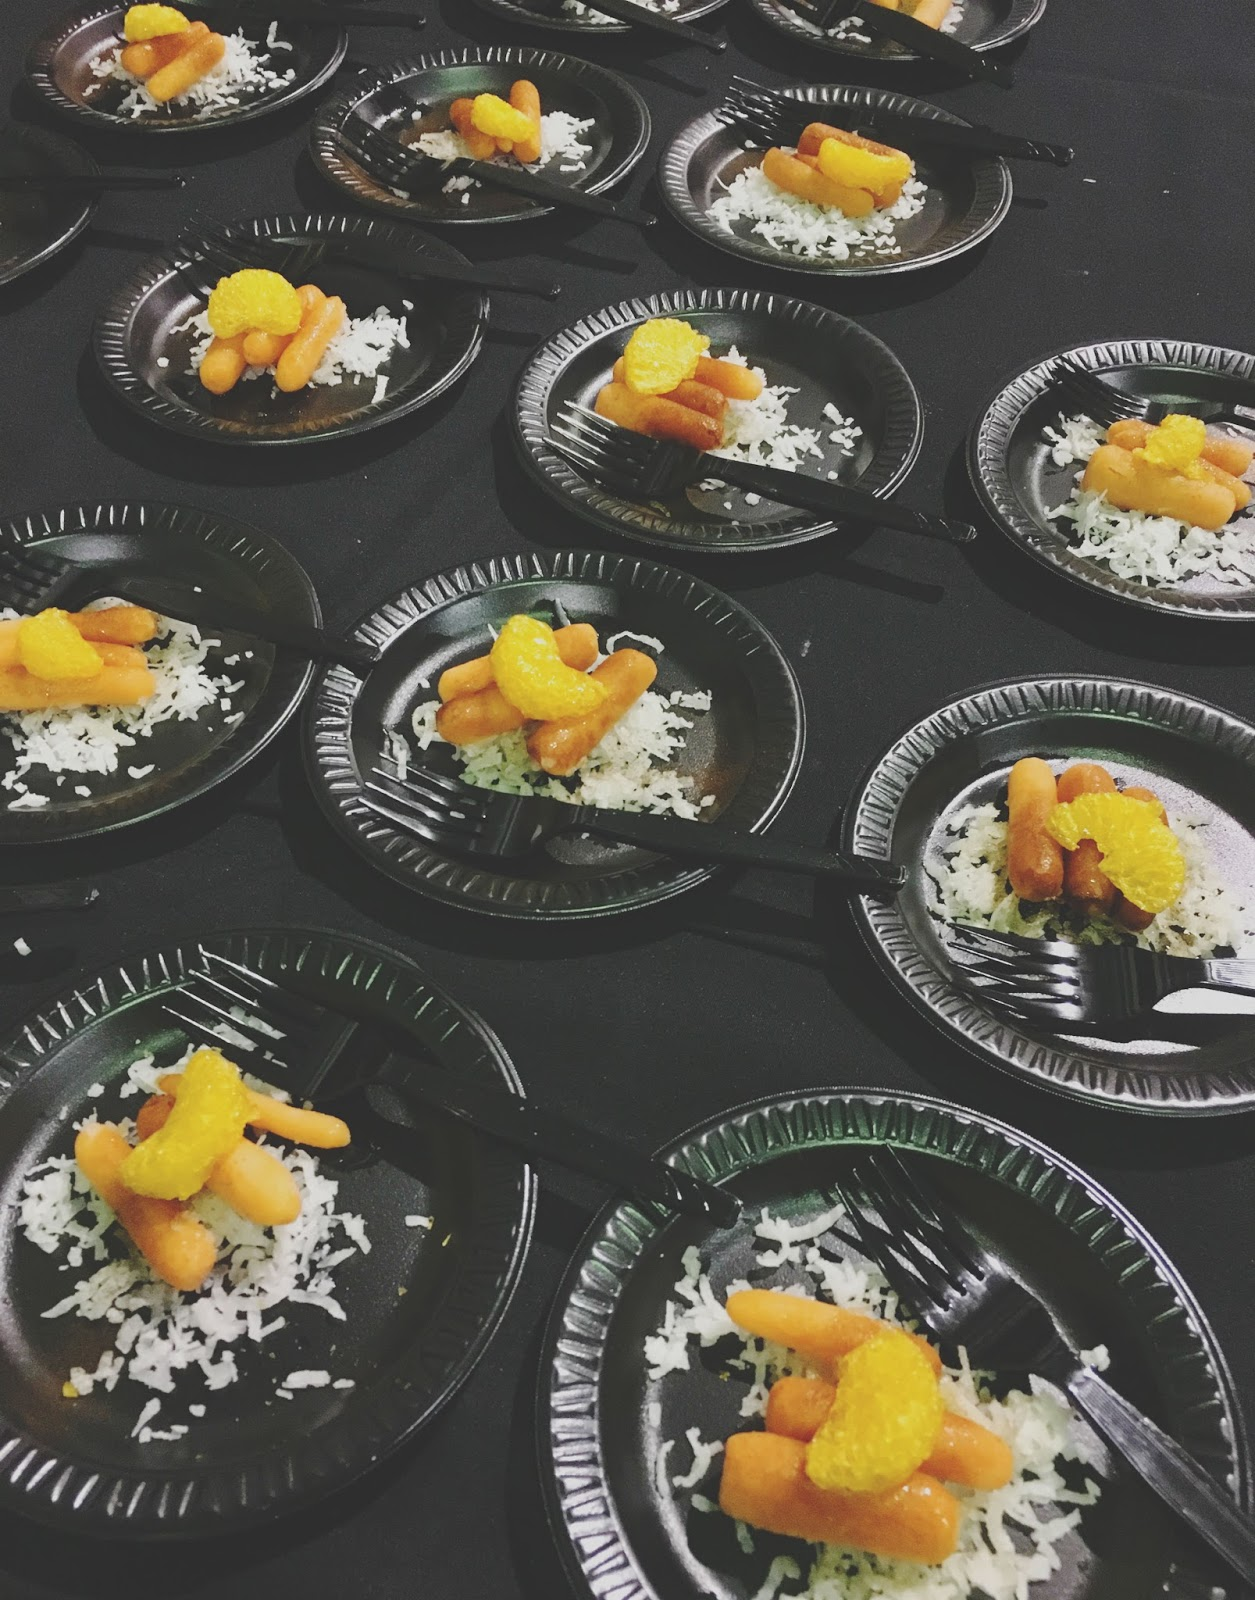 eculent at the 2016 Houston Press Menu of Menus Extravaganza